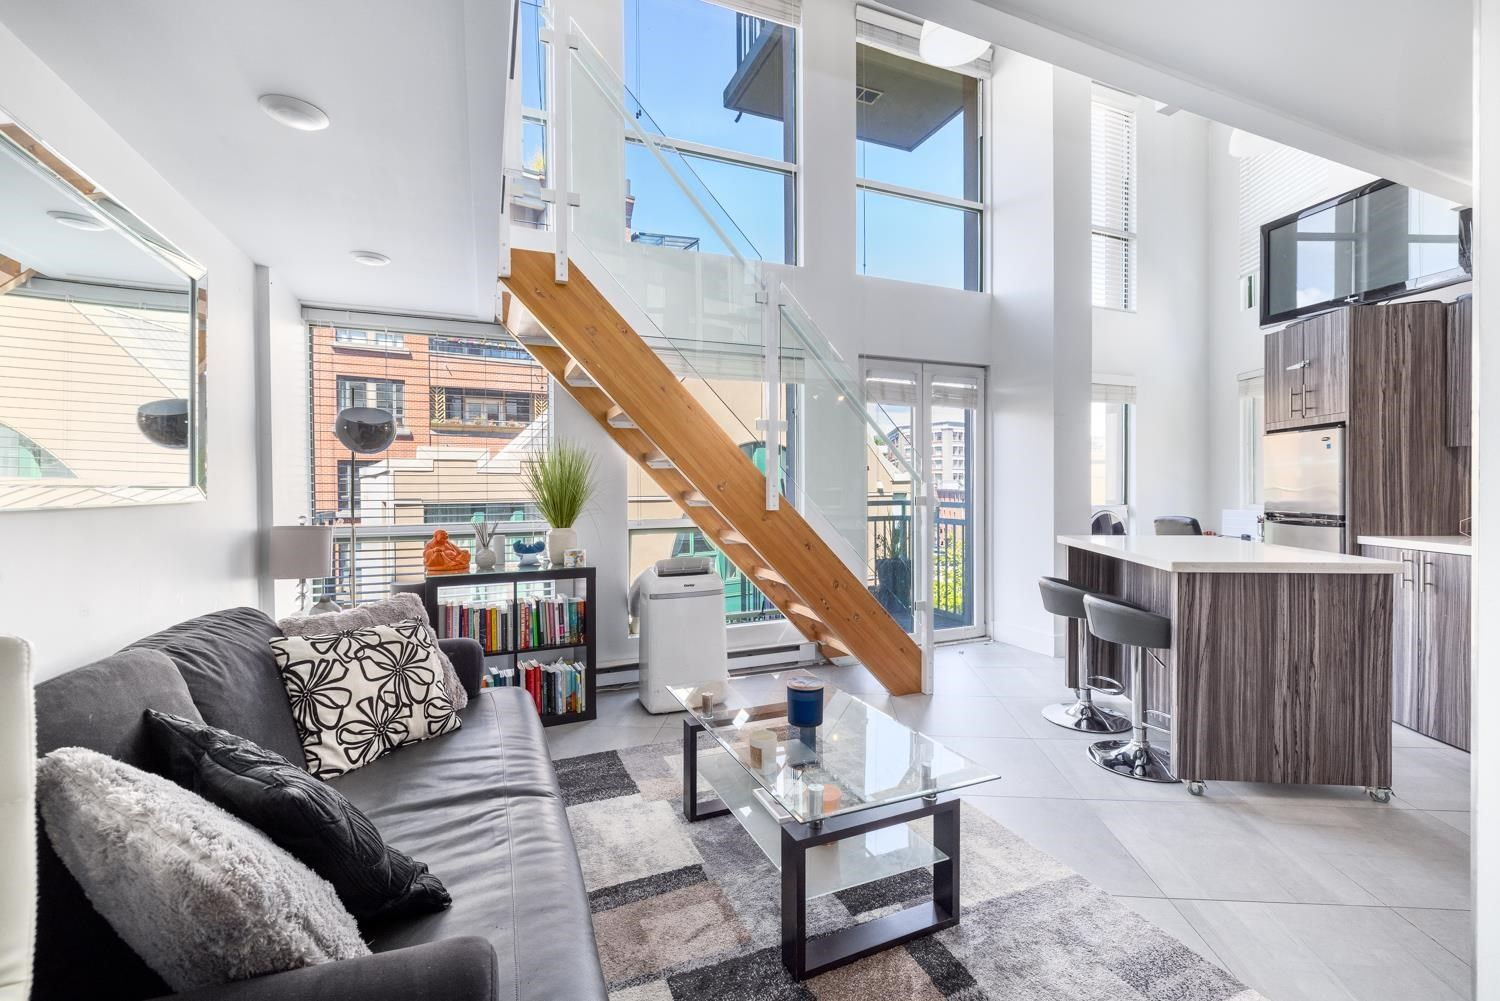 """Main Photo: 311 1 E CORDOVA Street in Vancouver: Downtown VE Condo for sale in """"Carral Station"""" (Vancouver East)  : MLS®# R2606790"""